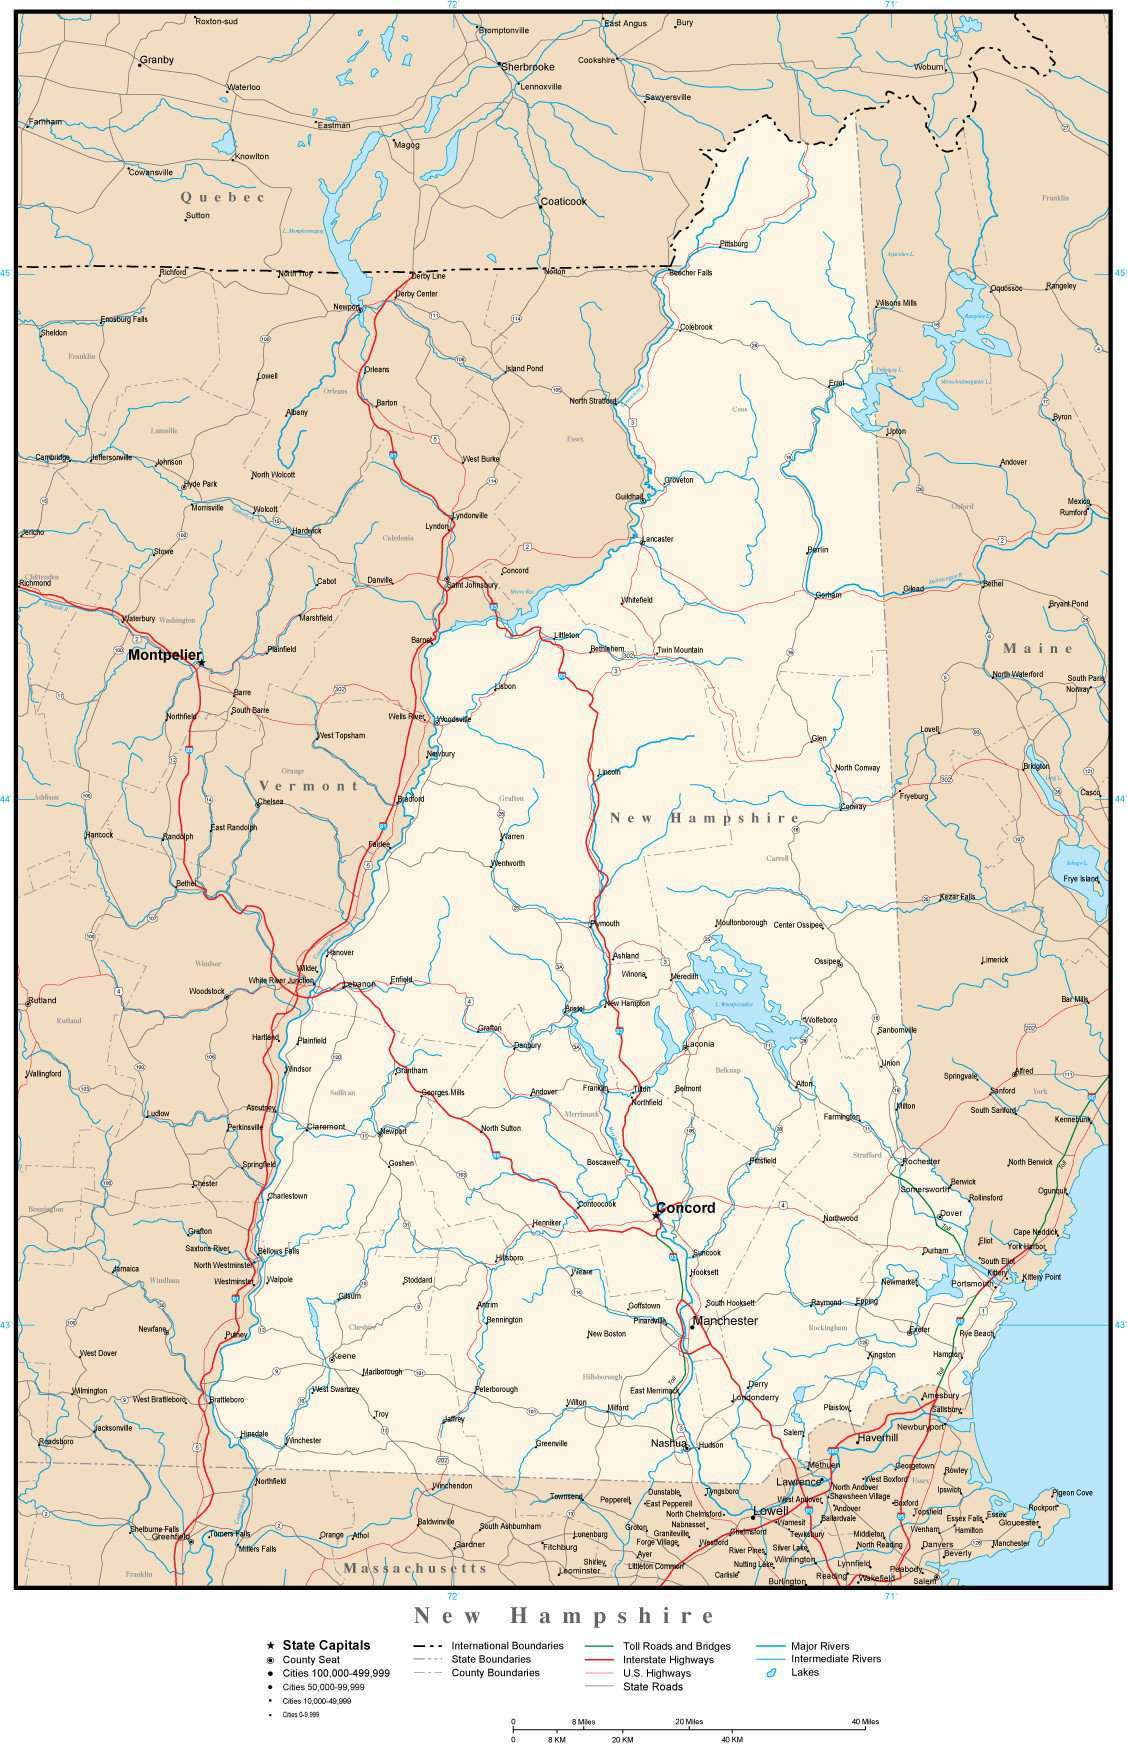 New Hampshire On Map Of Usa.New Hampshire Map In Adobe Illustrator Vector Format Map Resources